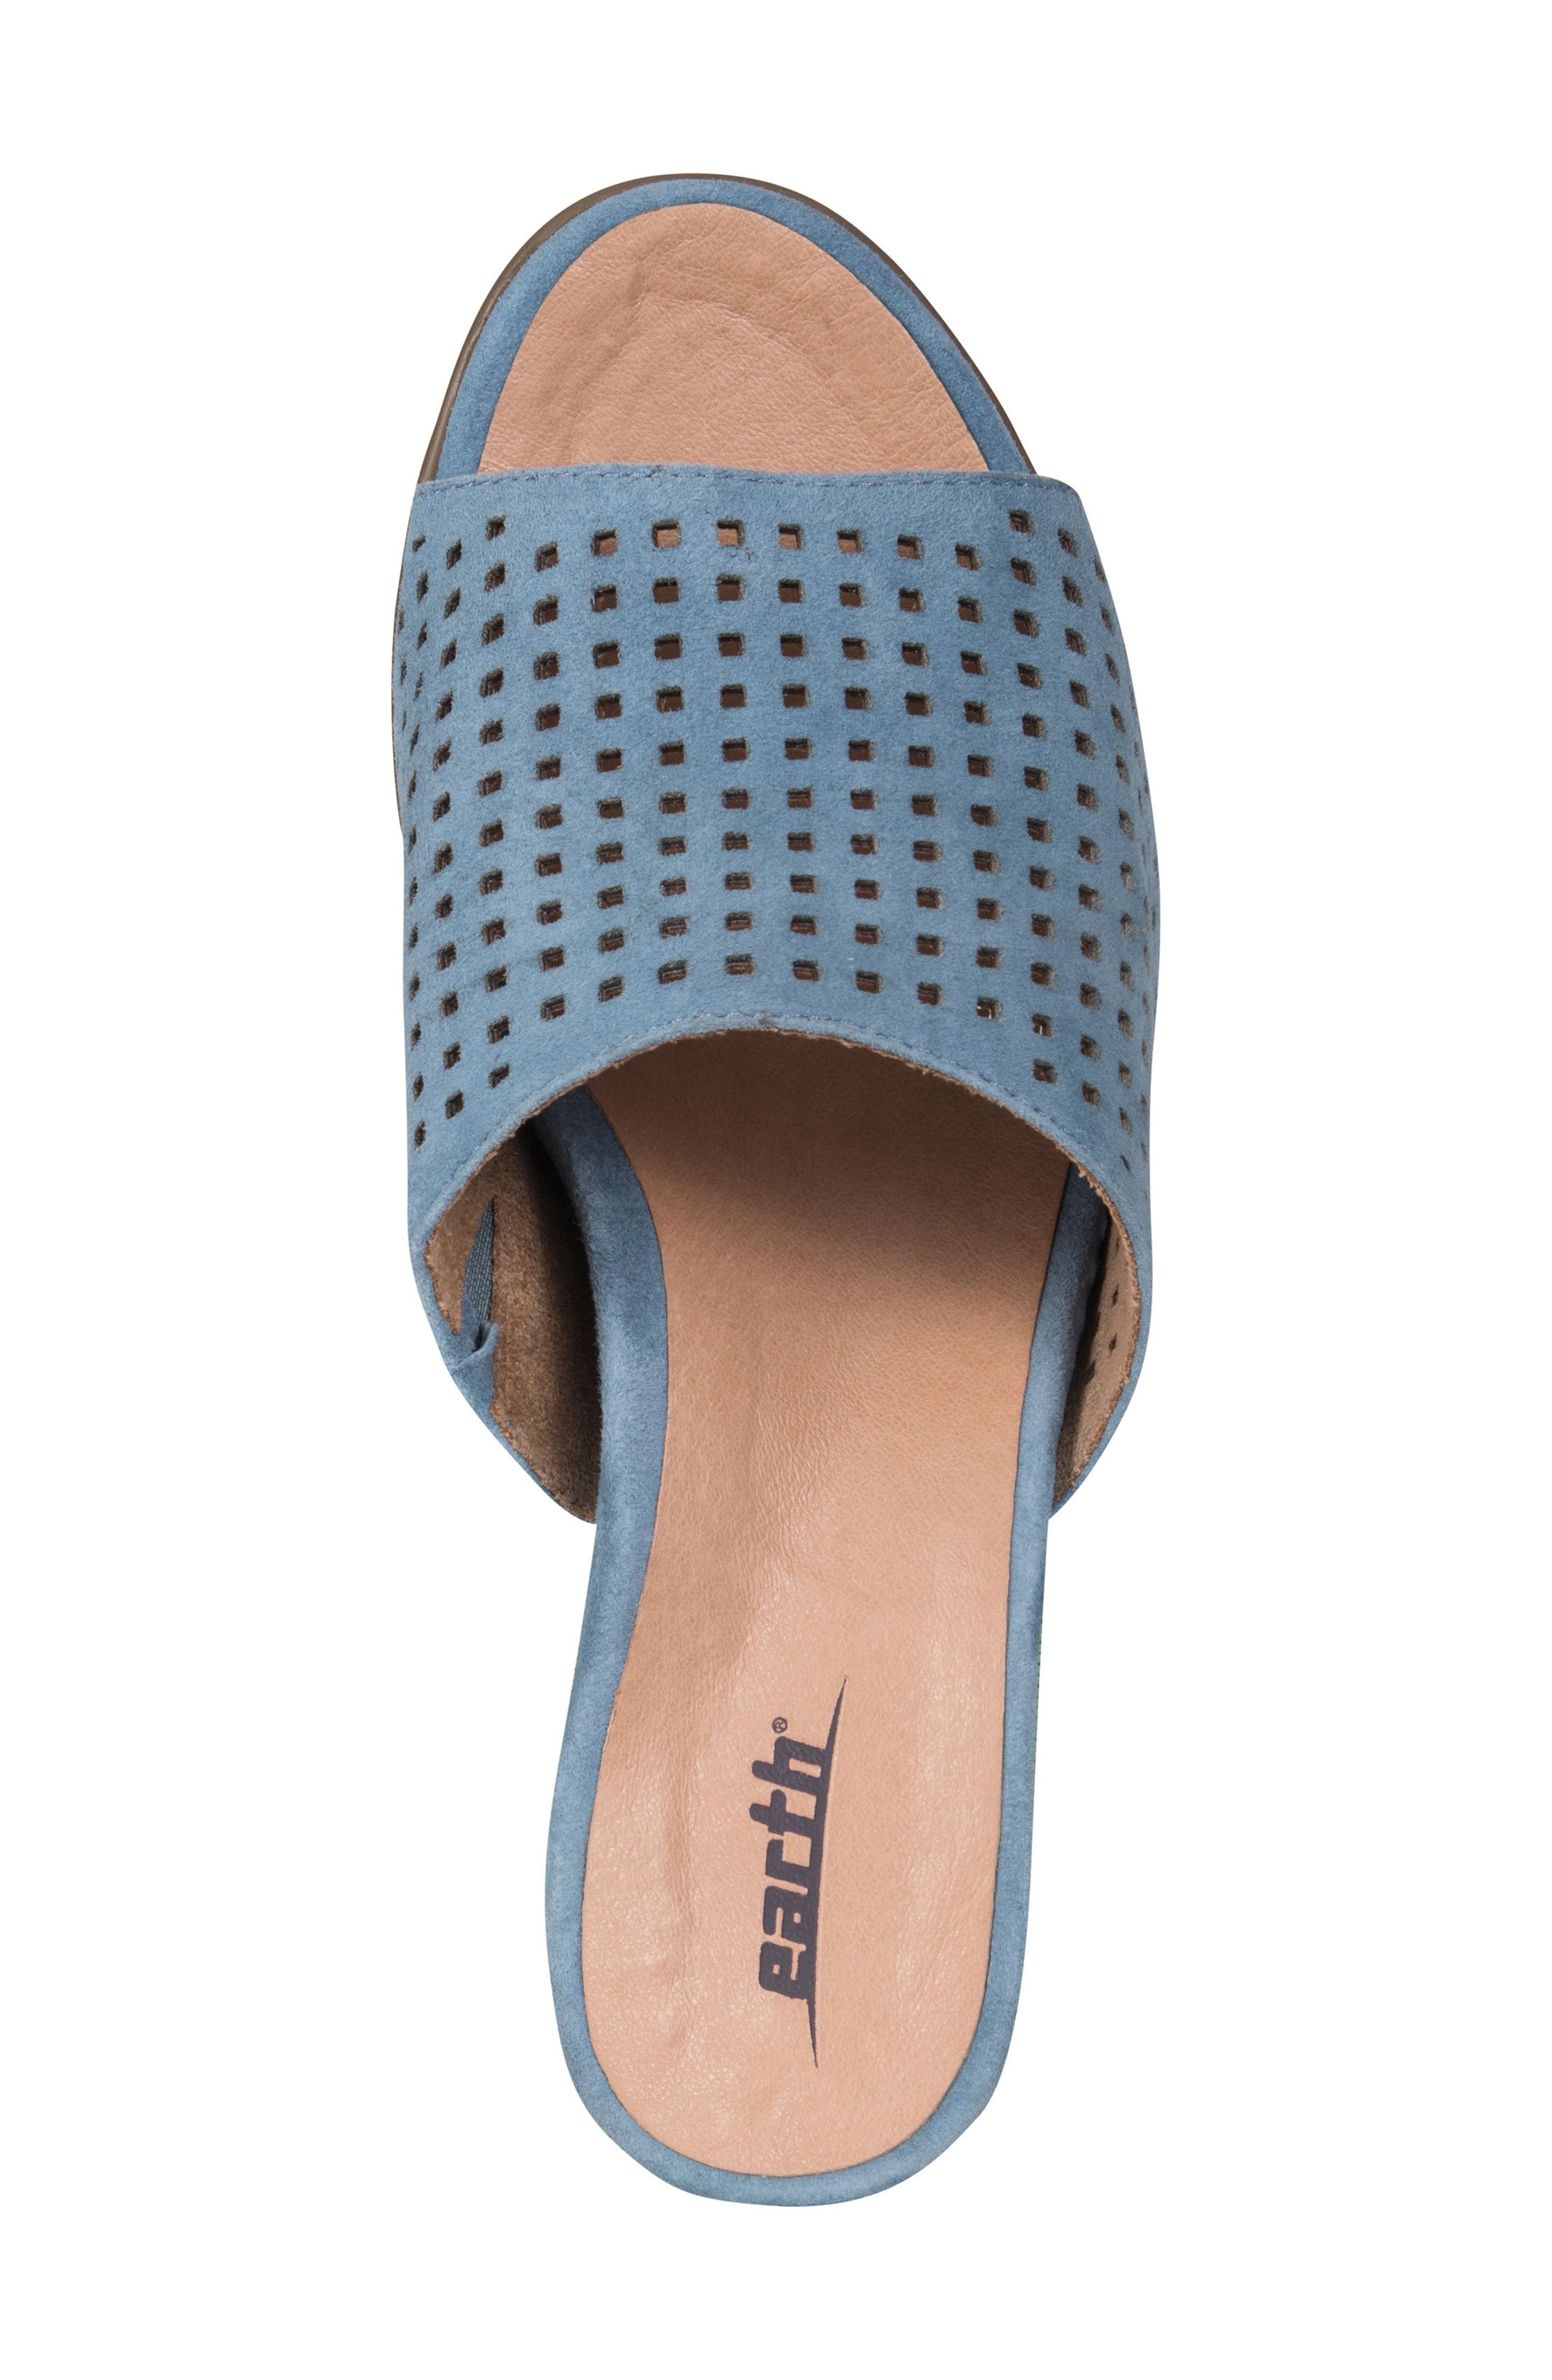 Ibiza Perforated Sandal,                             Alternate thumbnail 5, color,                             SKY BLUE SUEDE